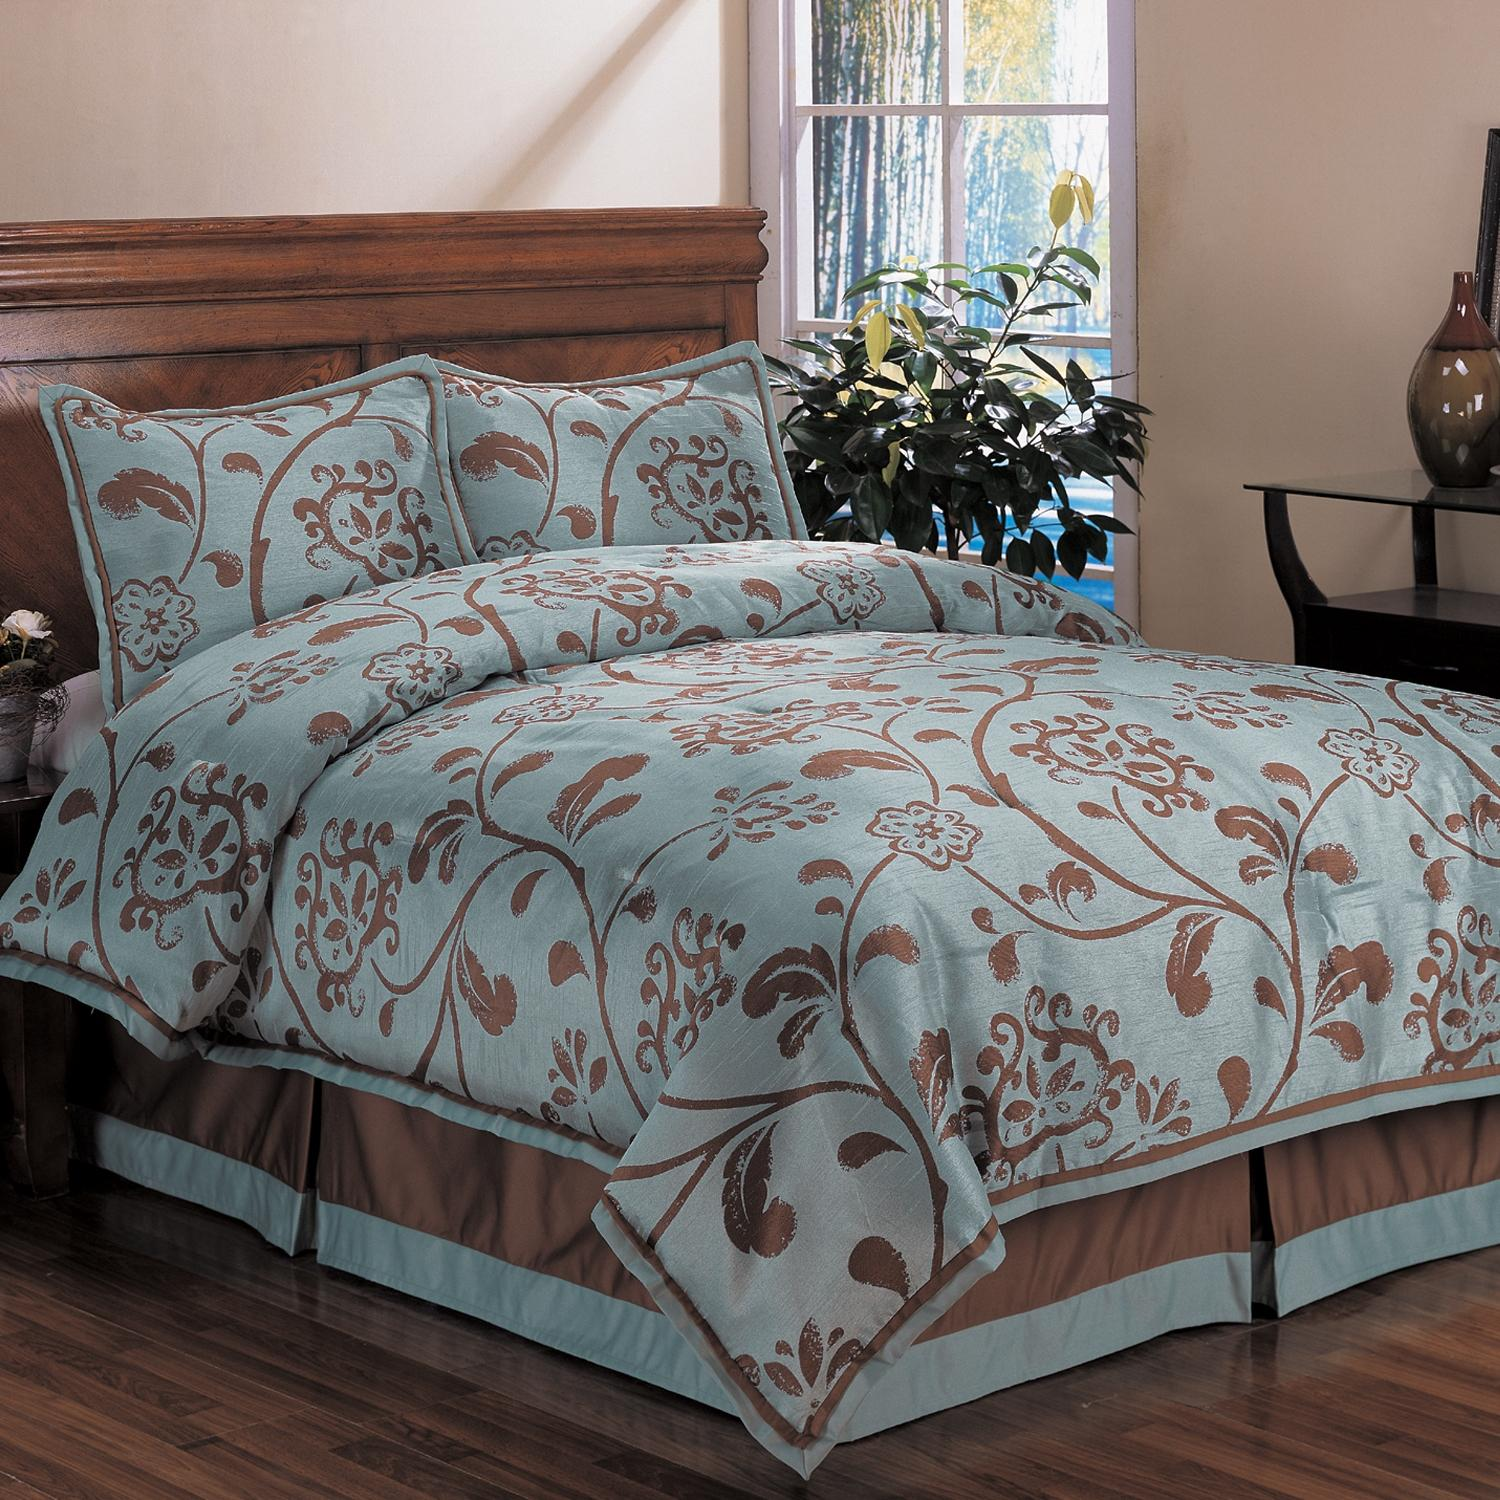 King Size Comforter Bedding Sets